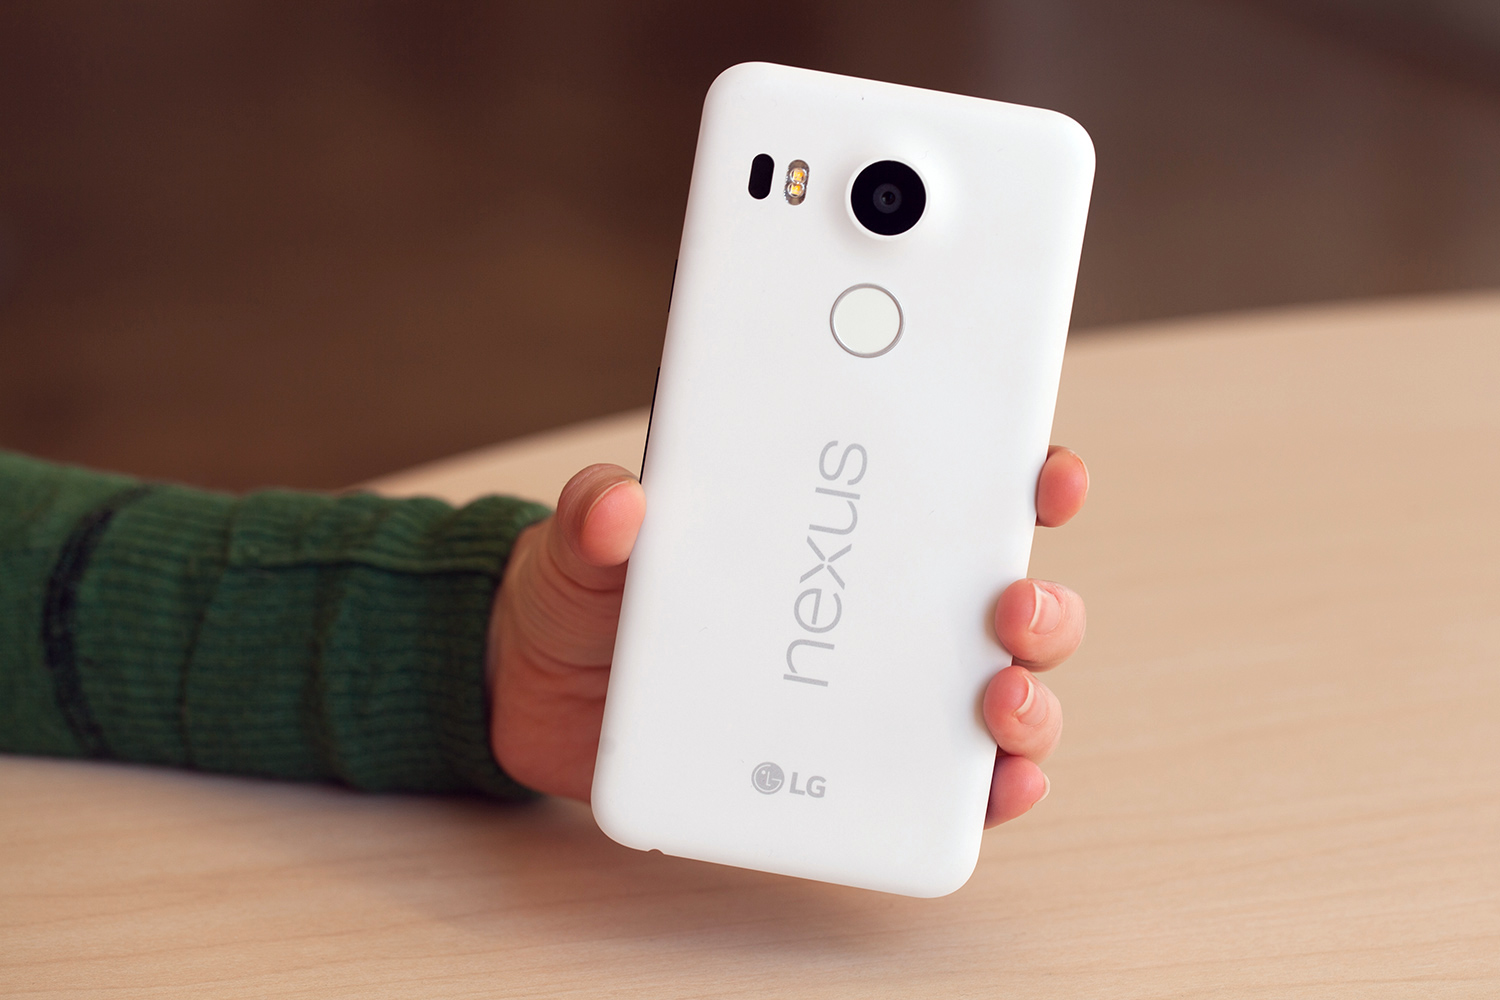 LG is offering owners full refunds for a Nexus 5X hardware malfunction